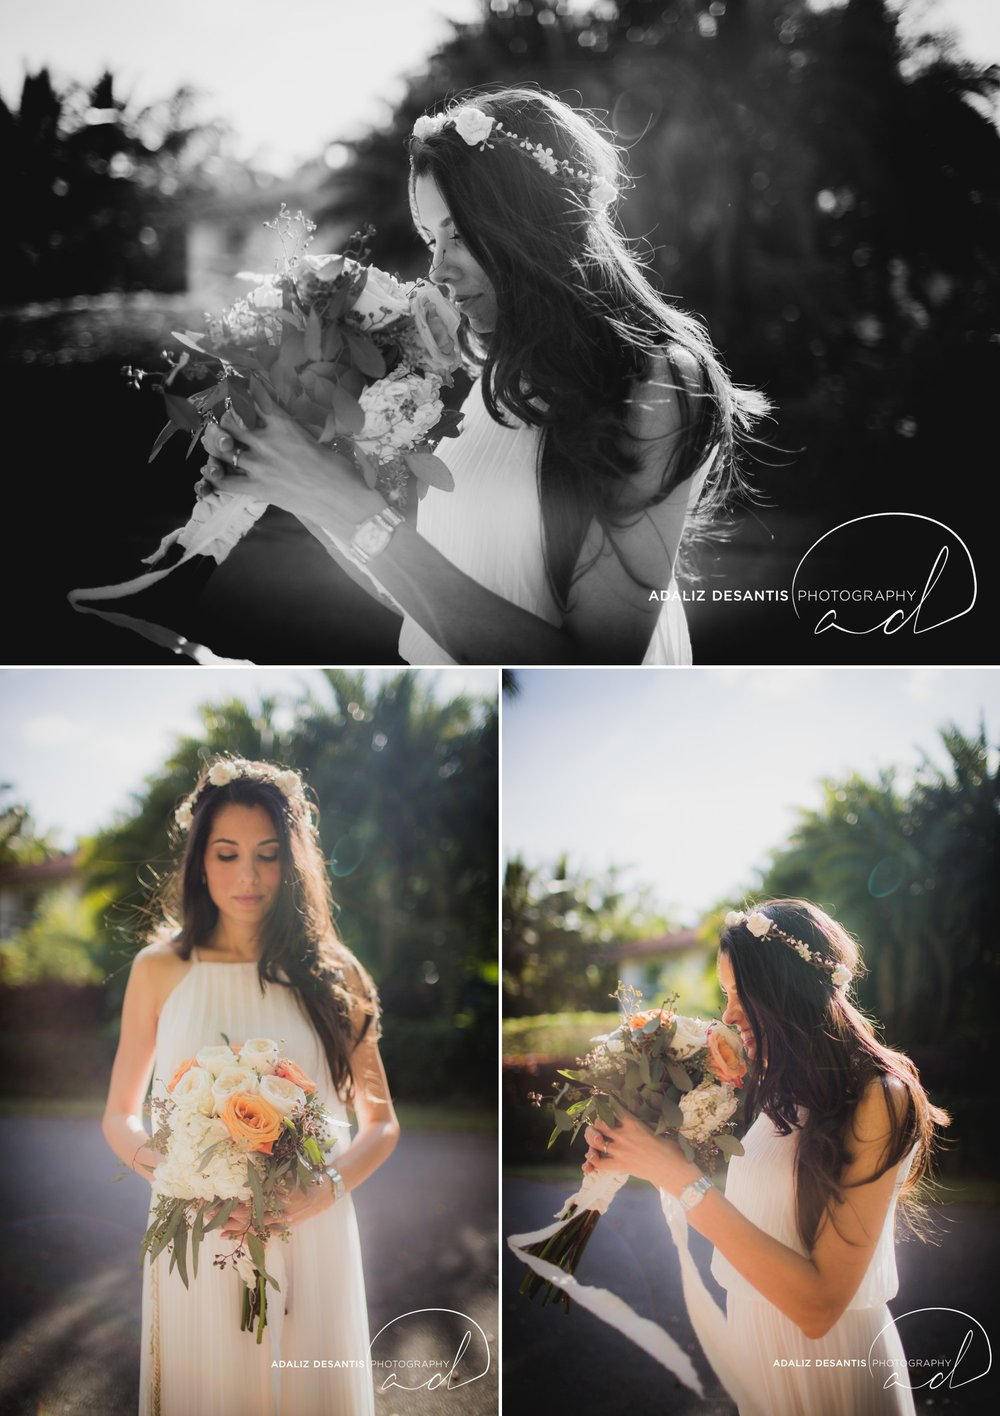 plymouth-congregational-church-coconut-grove-miami-elopement-matrimonio-civil-coral-gables 16.jpg